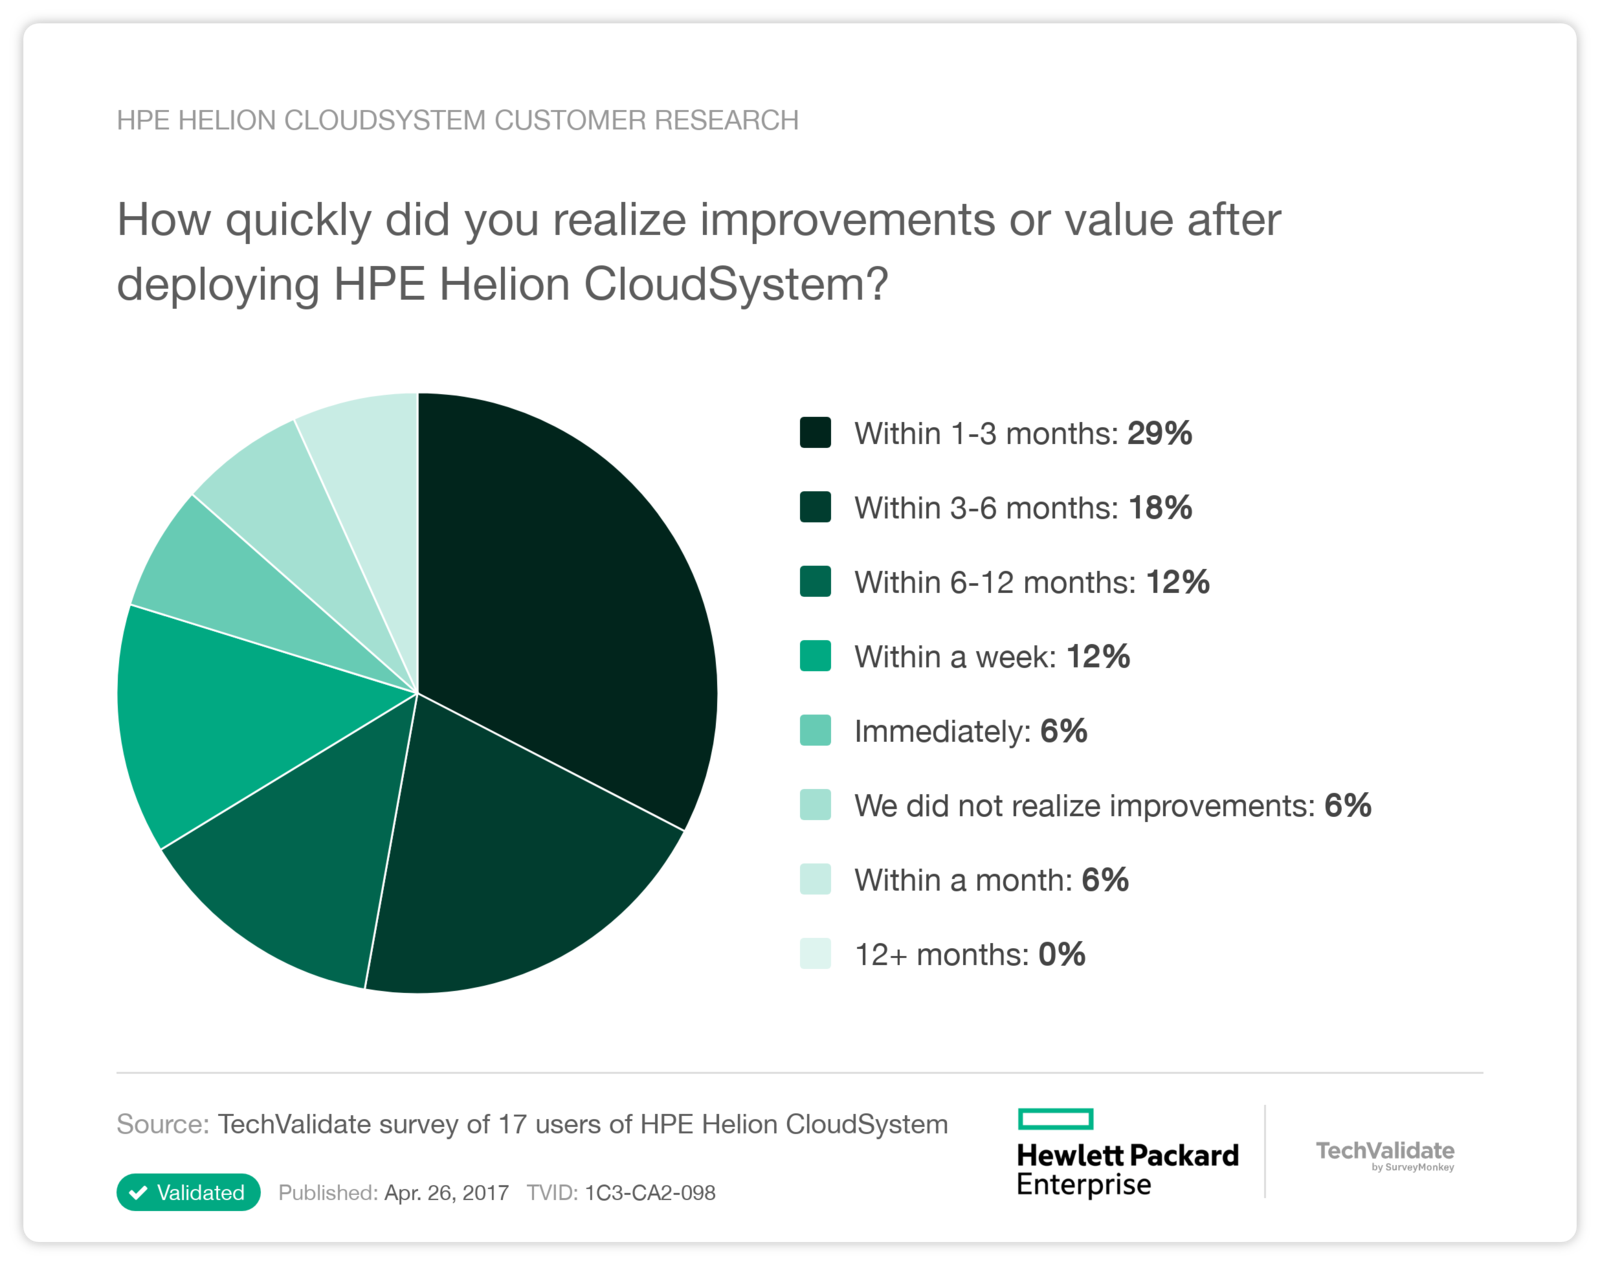 HPE Helion CloudSystem Customer Research